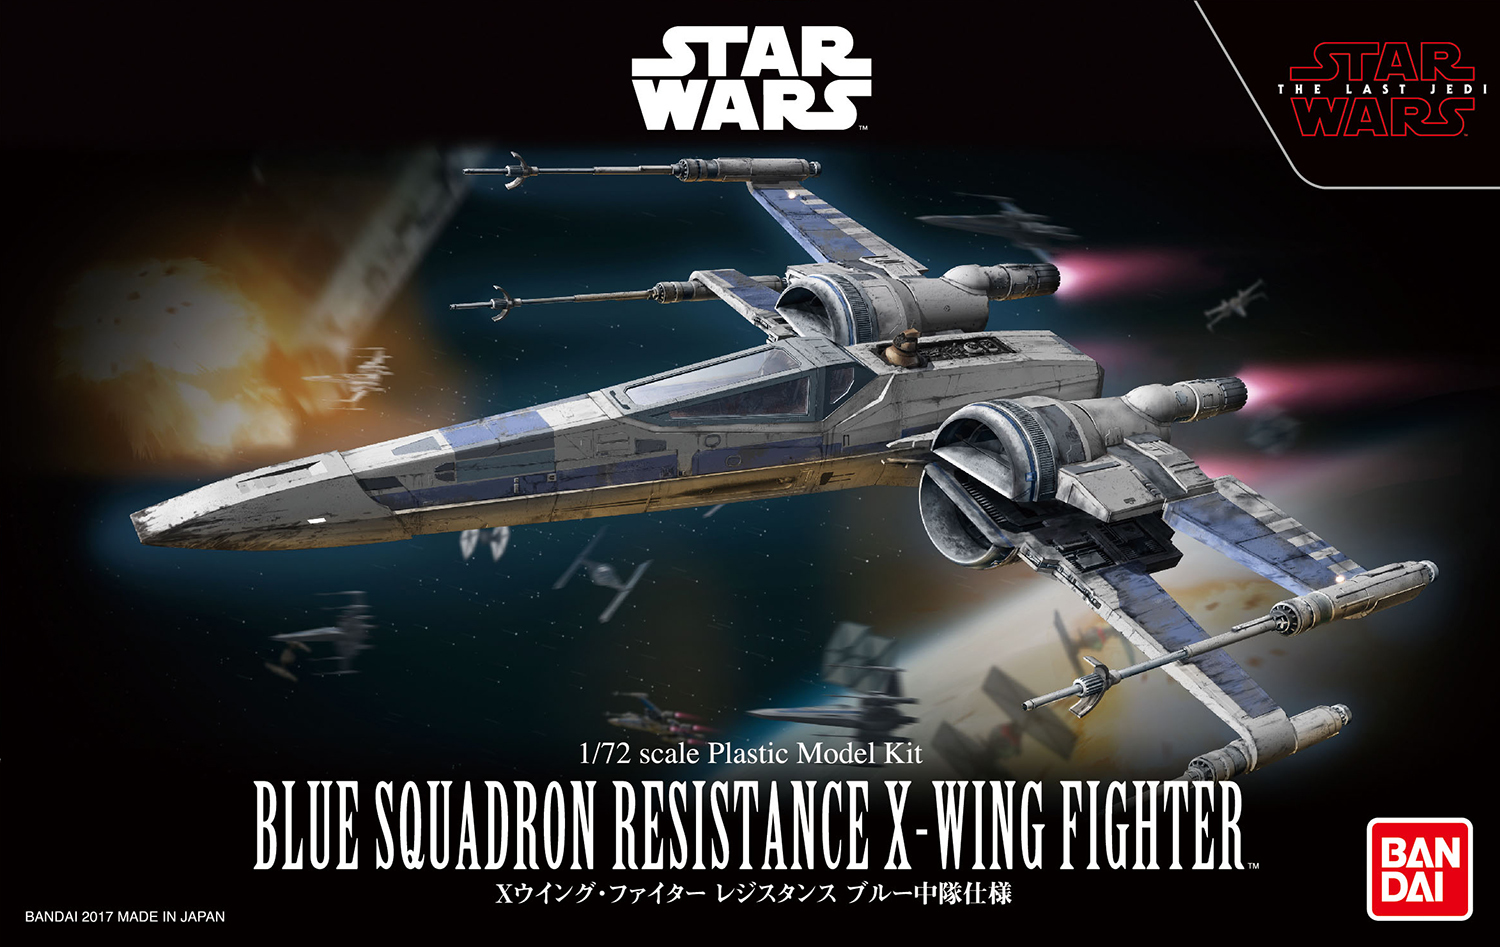 Star Wars - Blue Squadron Resistance X-Wing Fighter 172.jpg